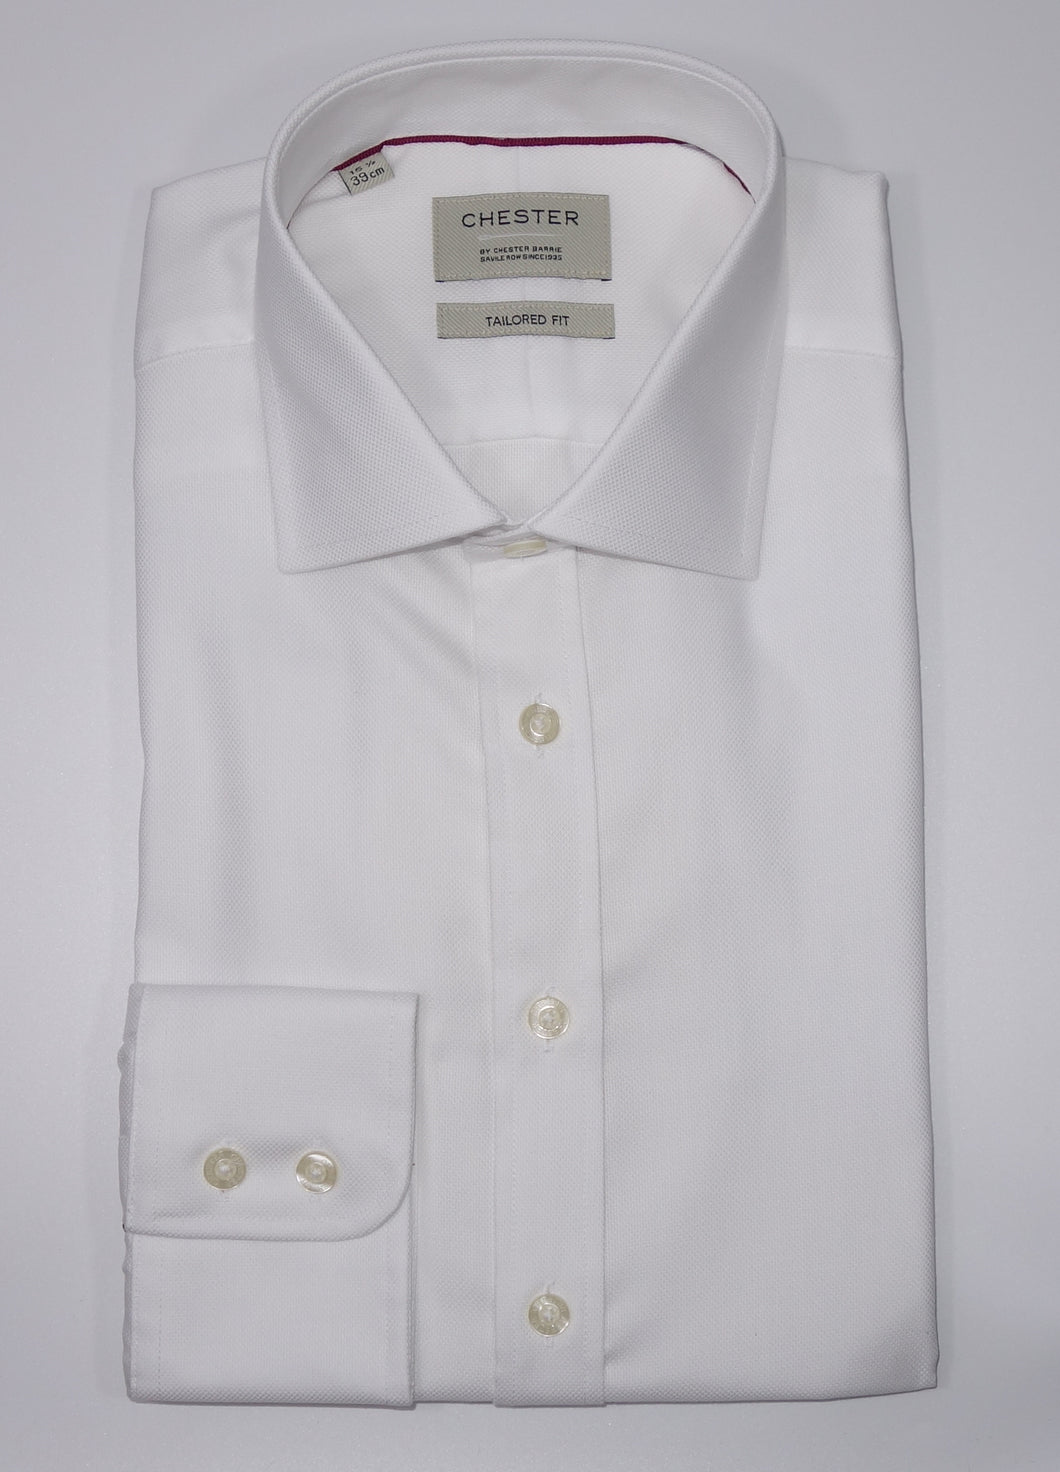 Chester Barrie Tailored Fit 100% Cotton White Royal Oxford